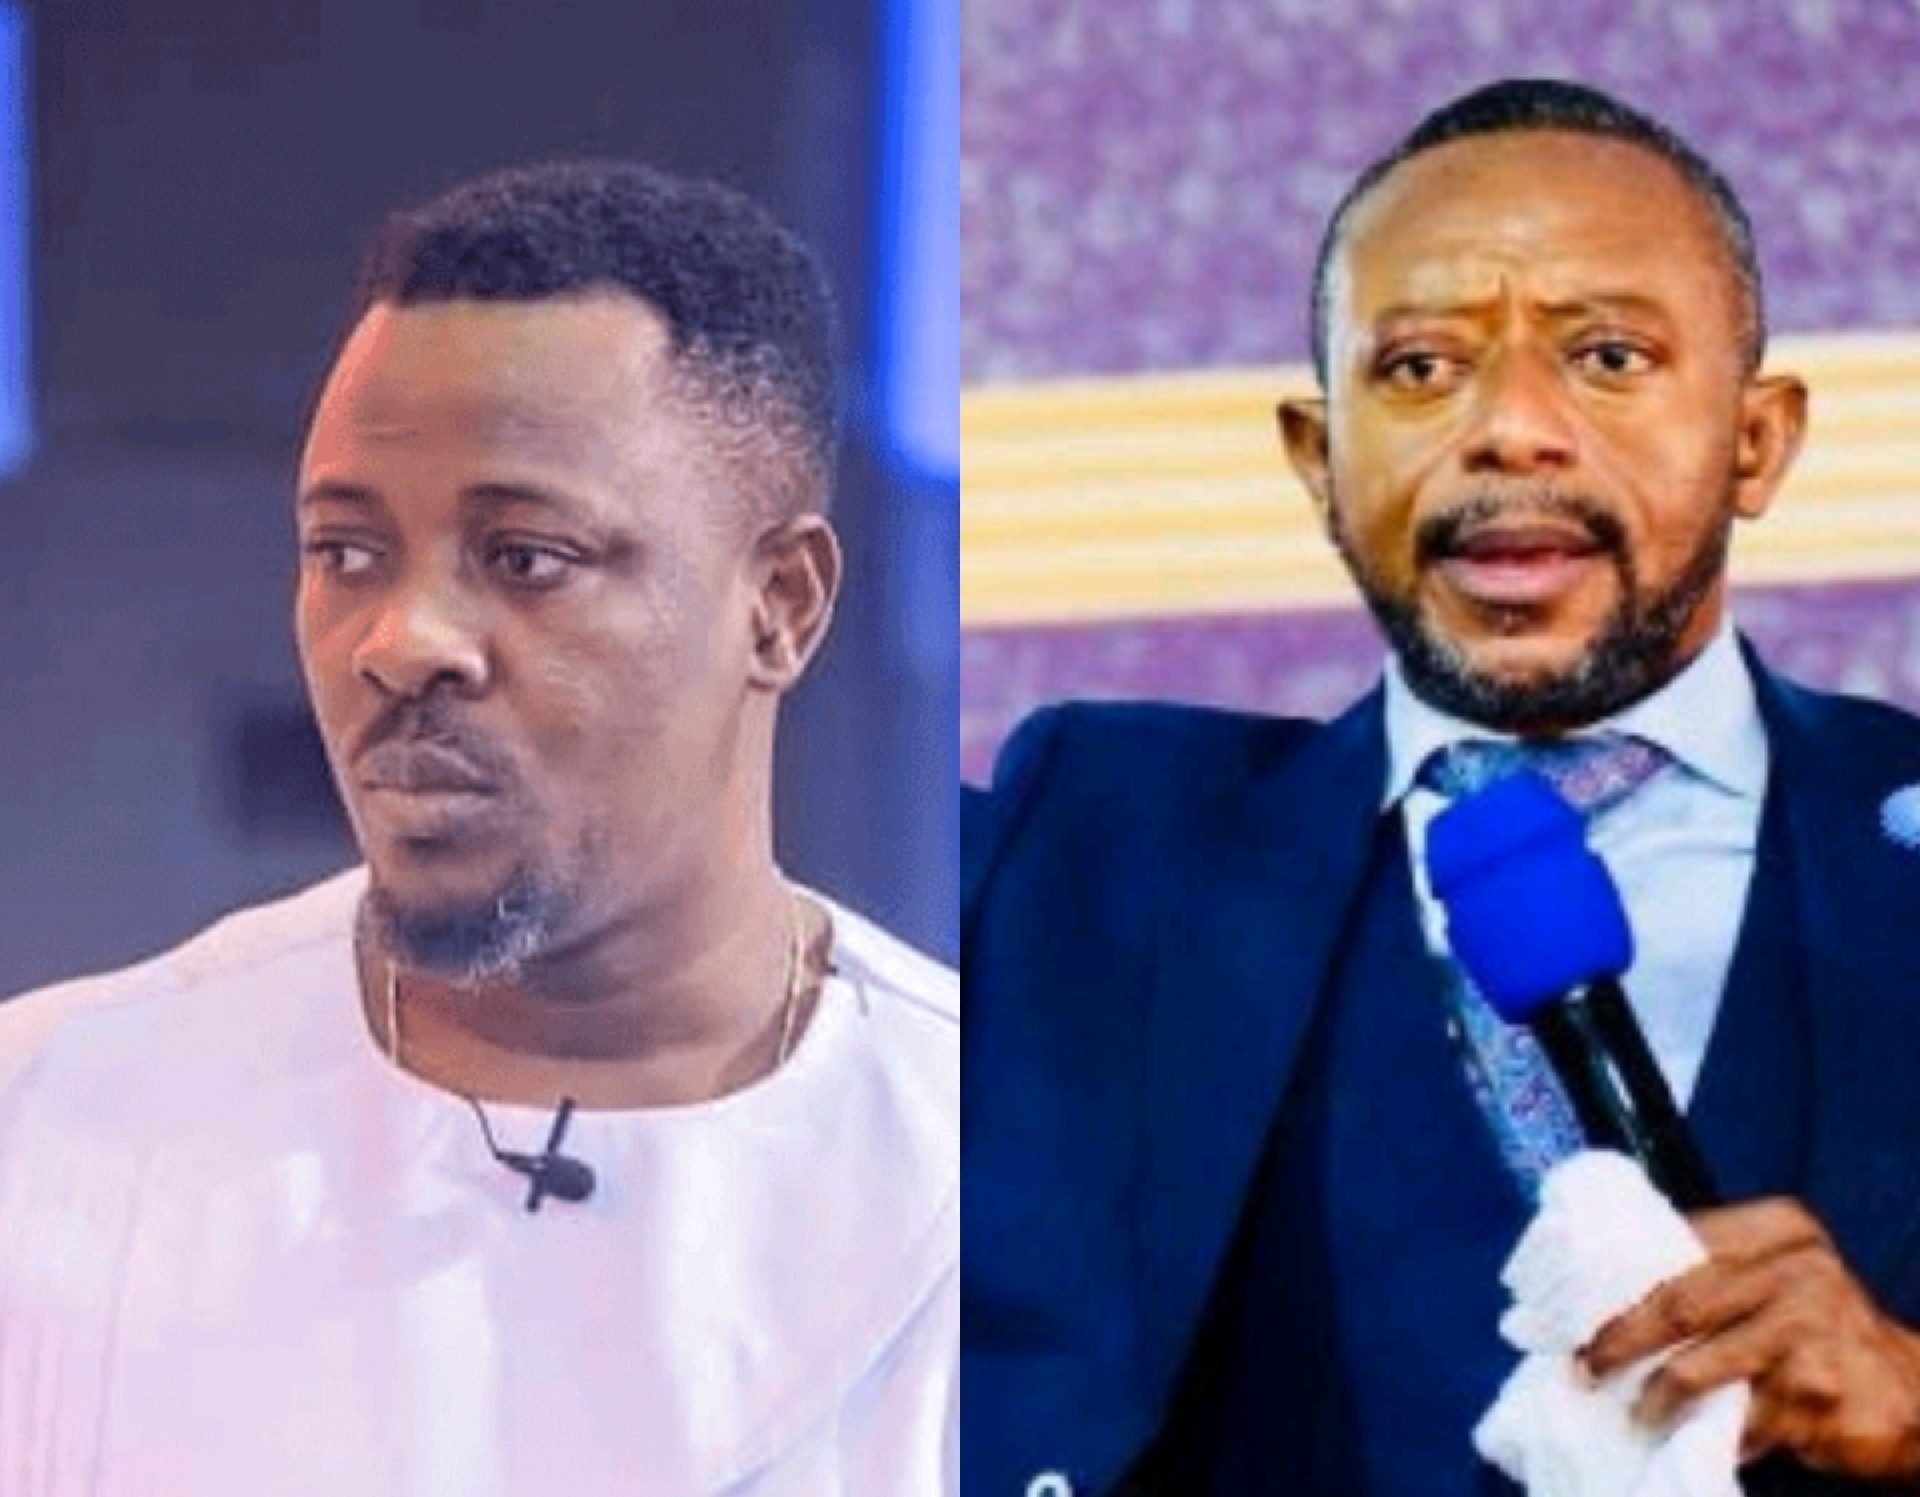 'I Respect The Rule Of Law......But Owusu Bempah Has Done So Much For His Party' - Prophet Nigel Exp